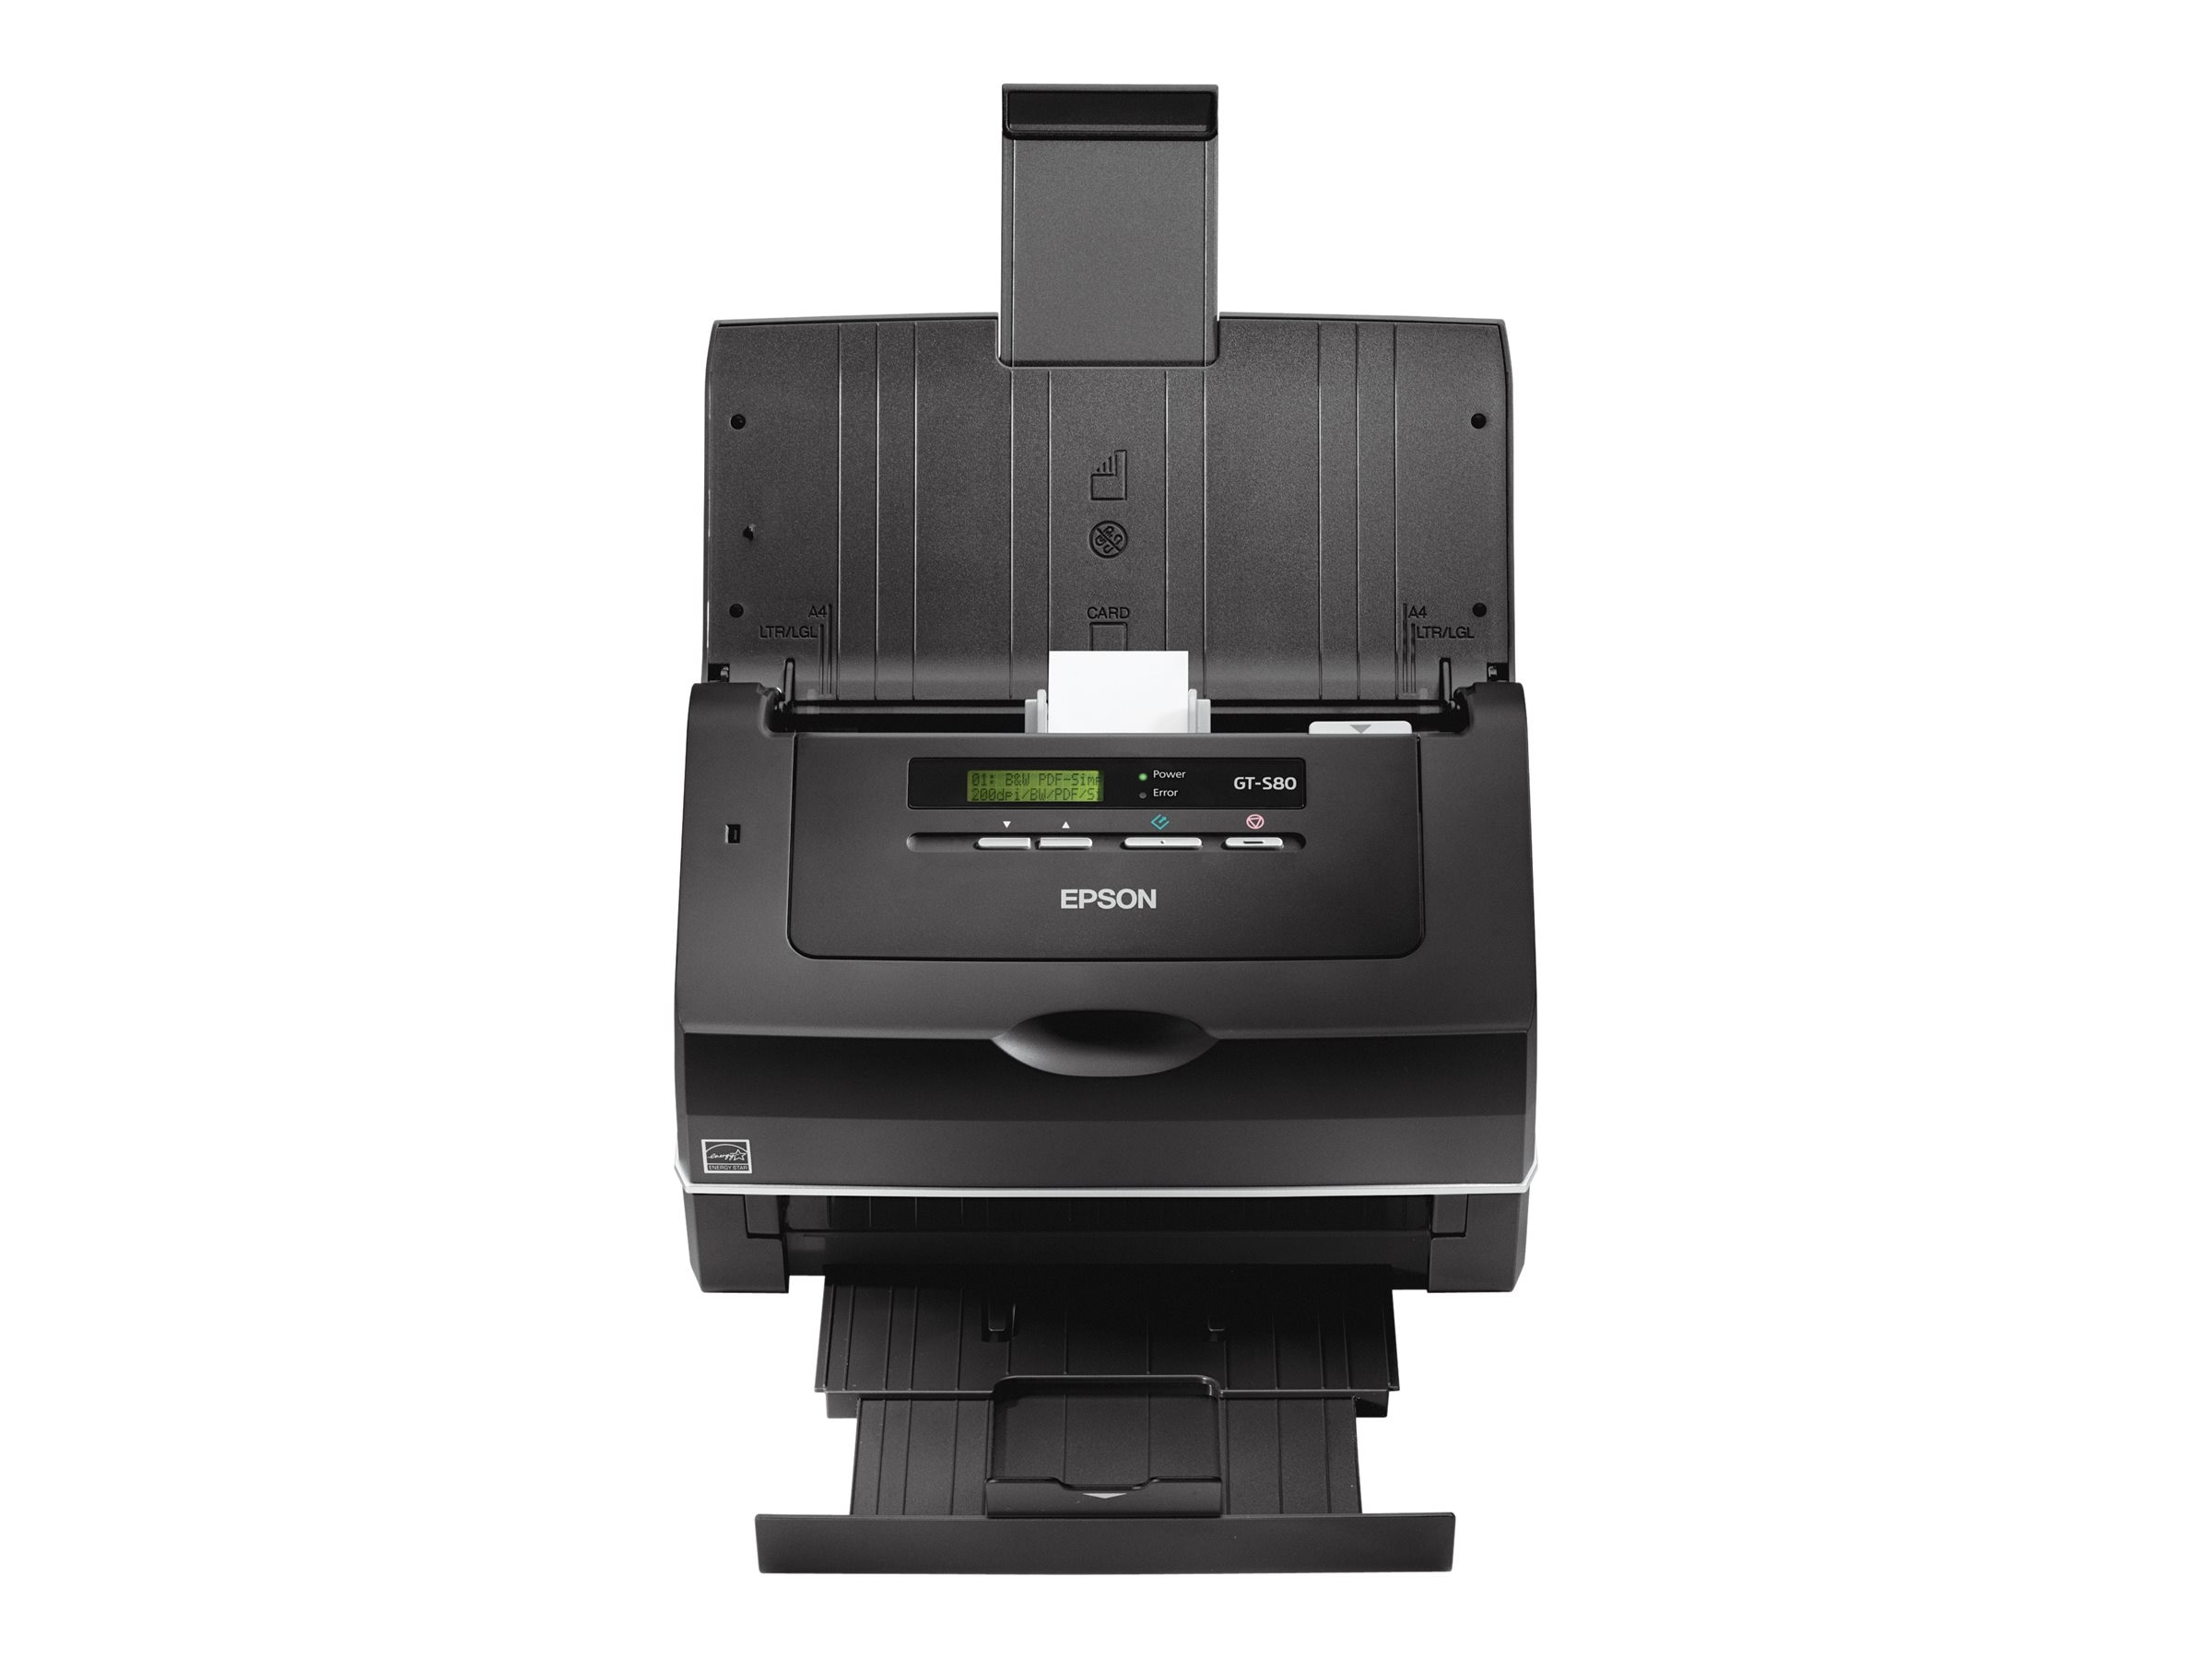 Epson WorkForce Pro GT-S80 Scanner - $799.99 less instant rebate of $62.00, B11B194081